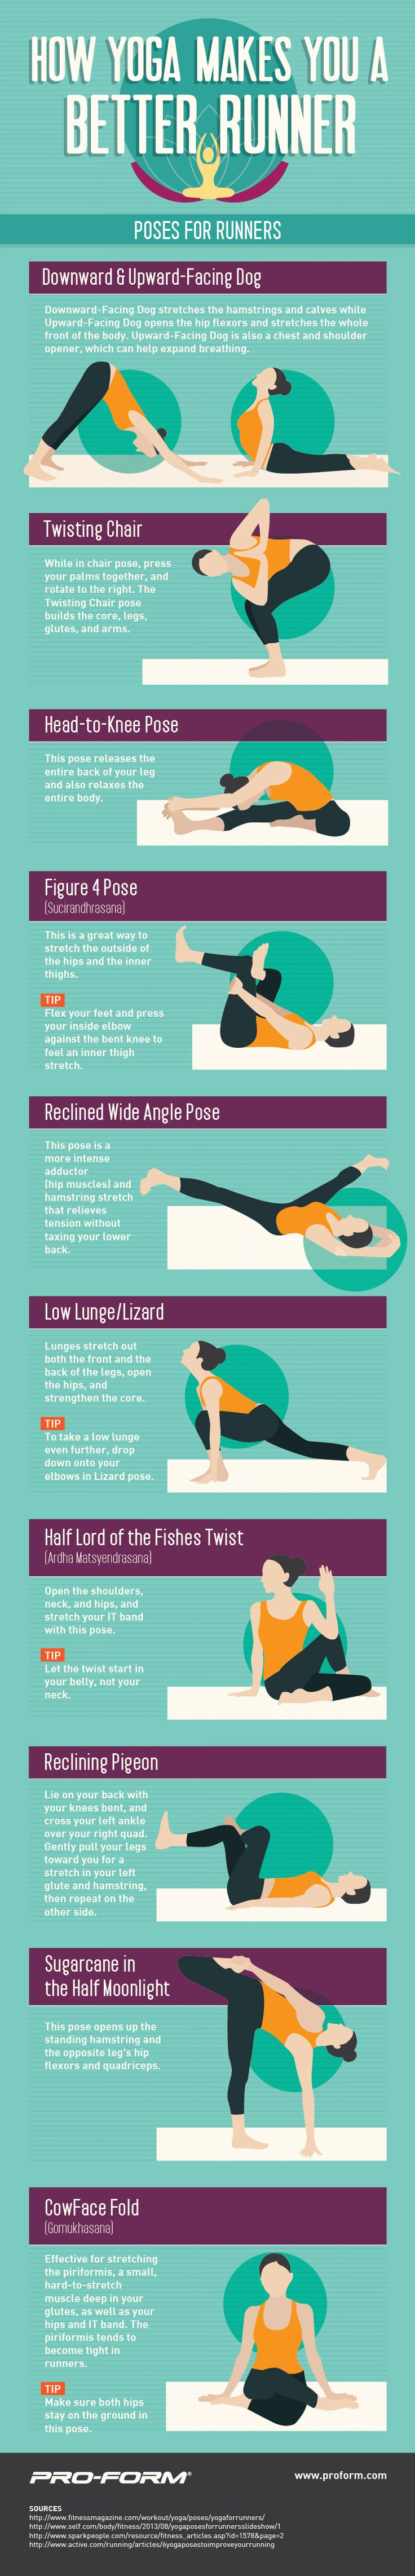 buy women sports shoes online india How Yoga Makes You a Better Runner  Poses for Runners  infographic  Yoga  Health  Running